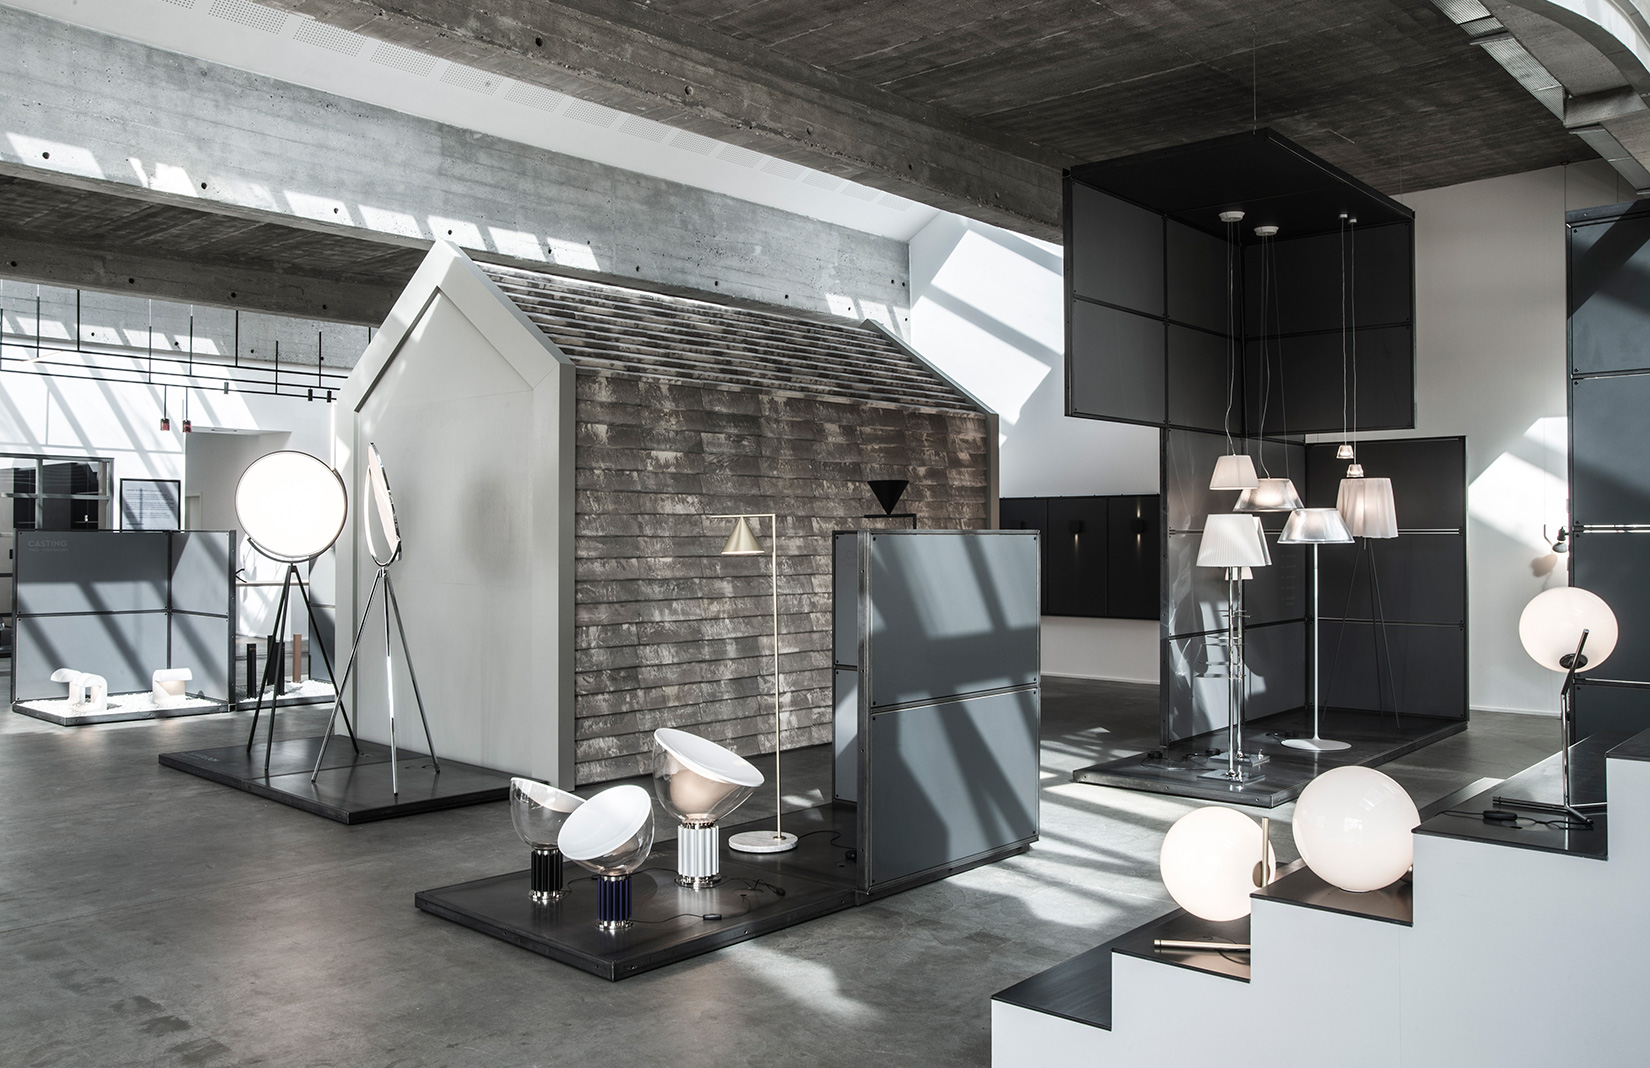 Flos Scandinavia showroom designed by OEO Studio in Copenhagen